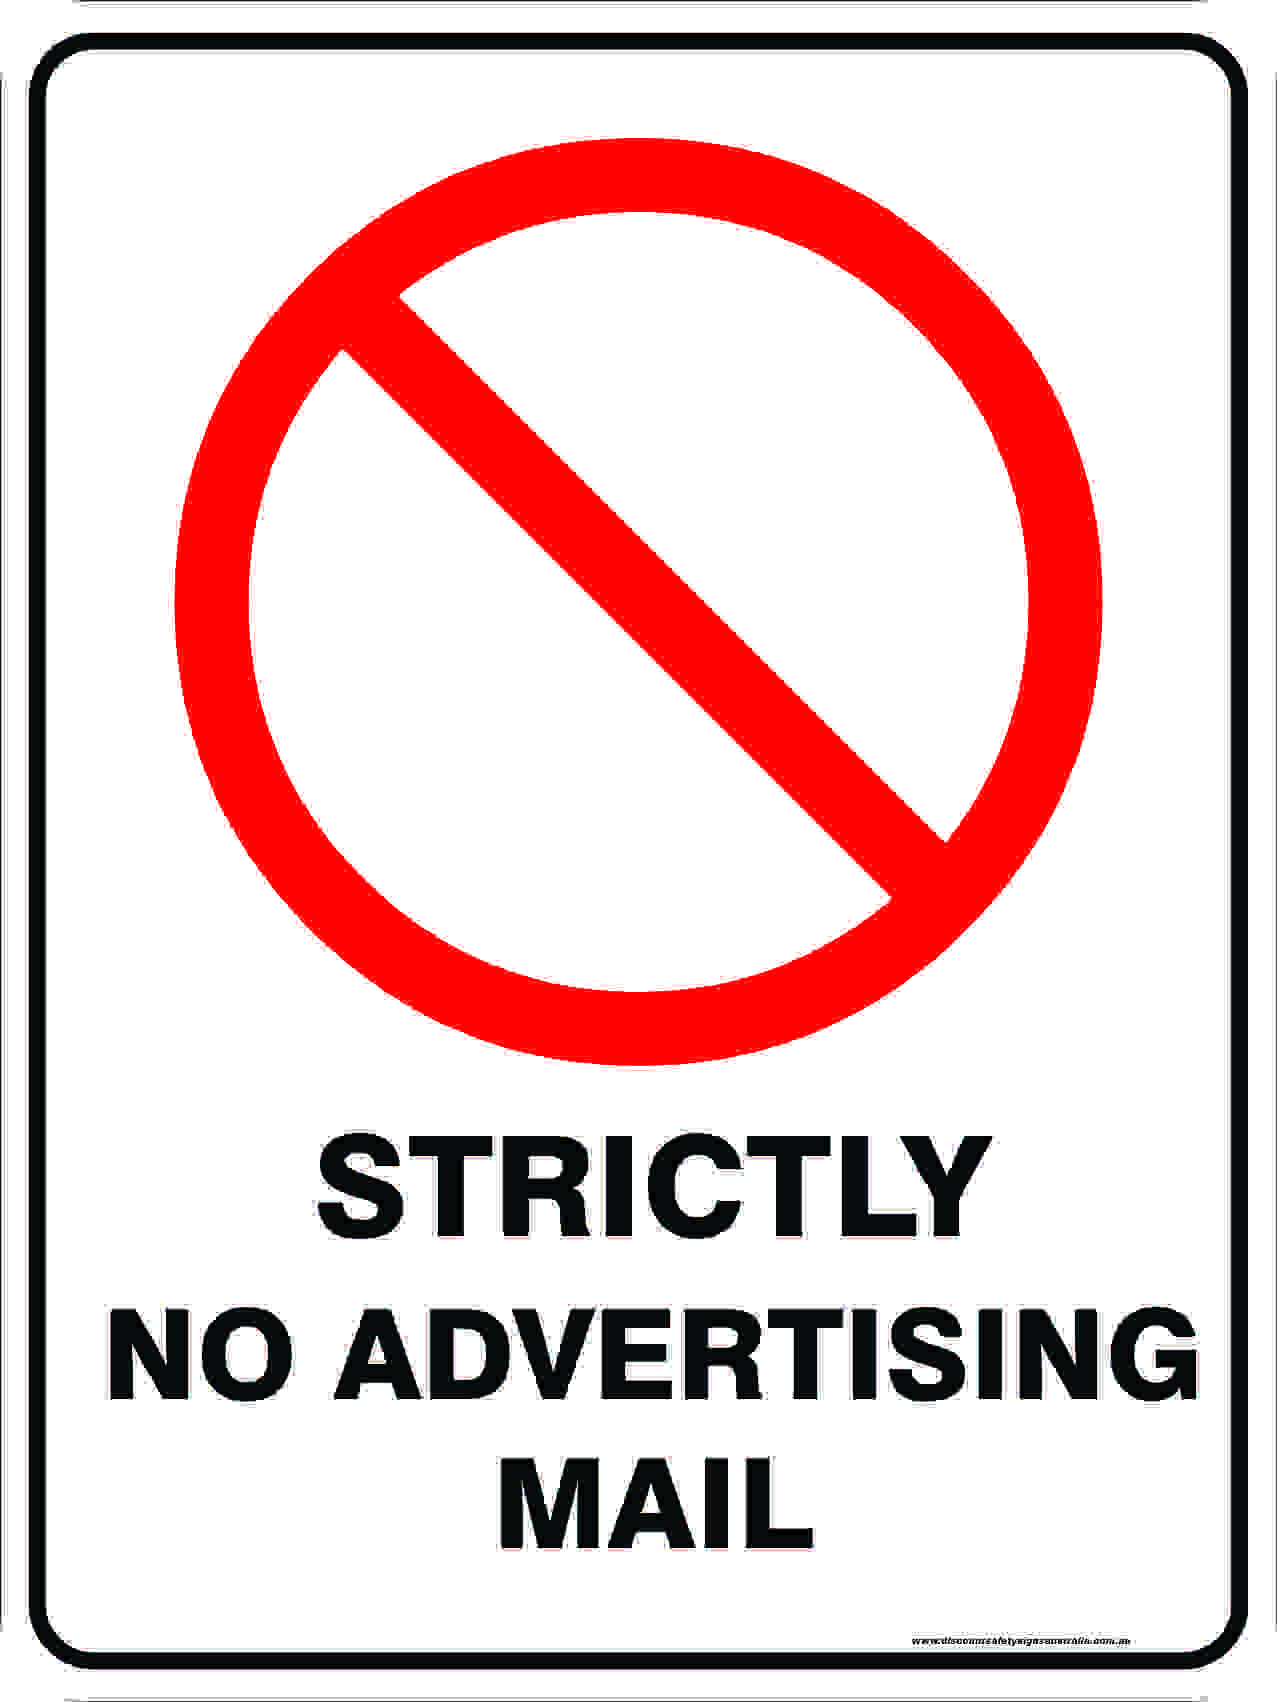 Prohibition Signs STRICTLY NO ADVERTISING MAIL